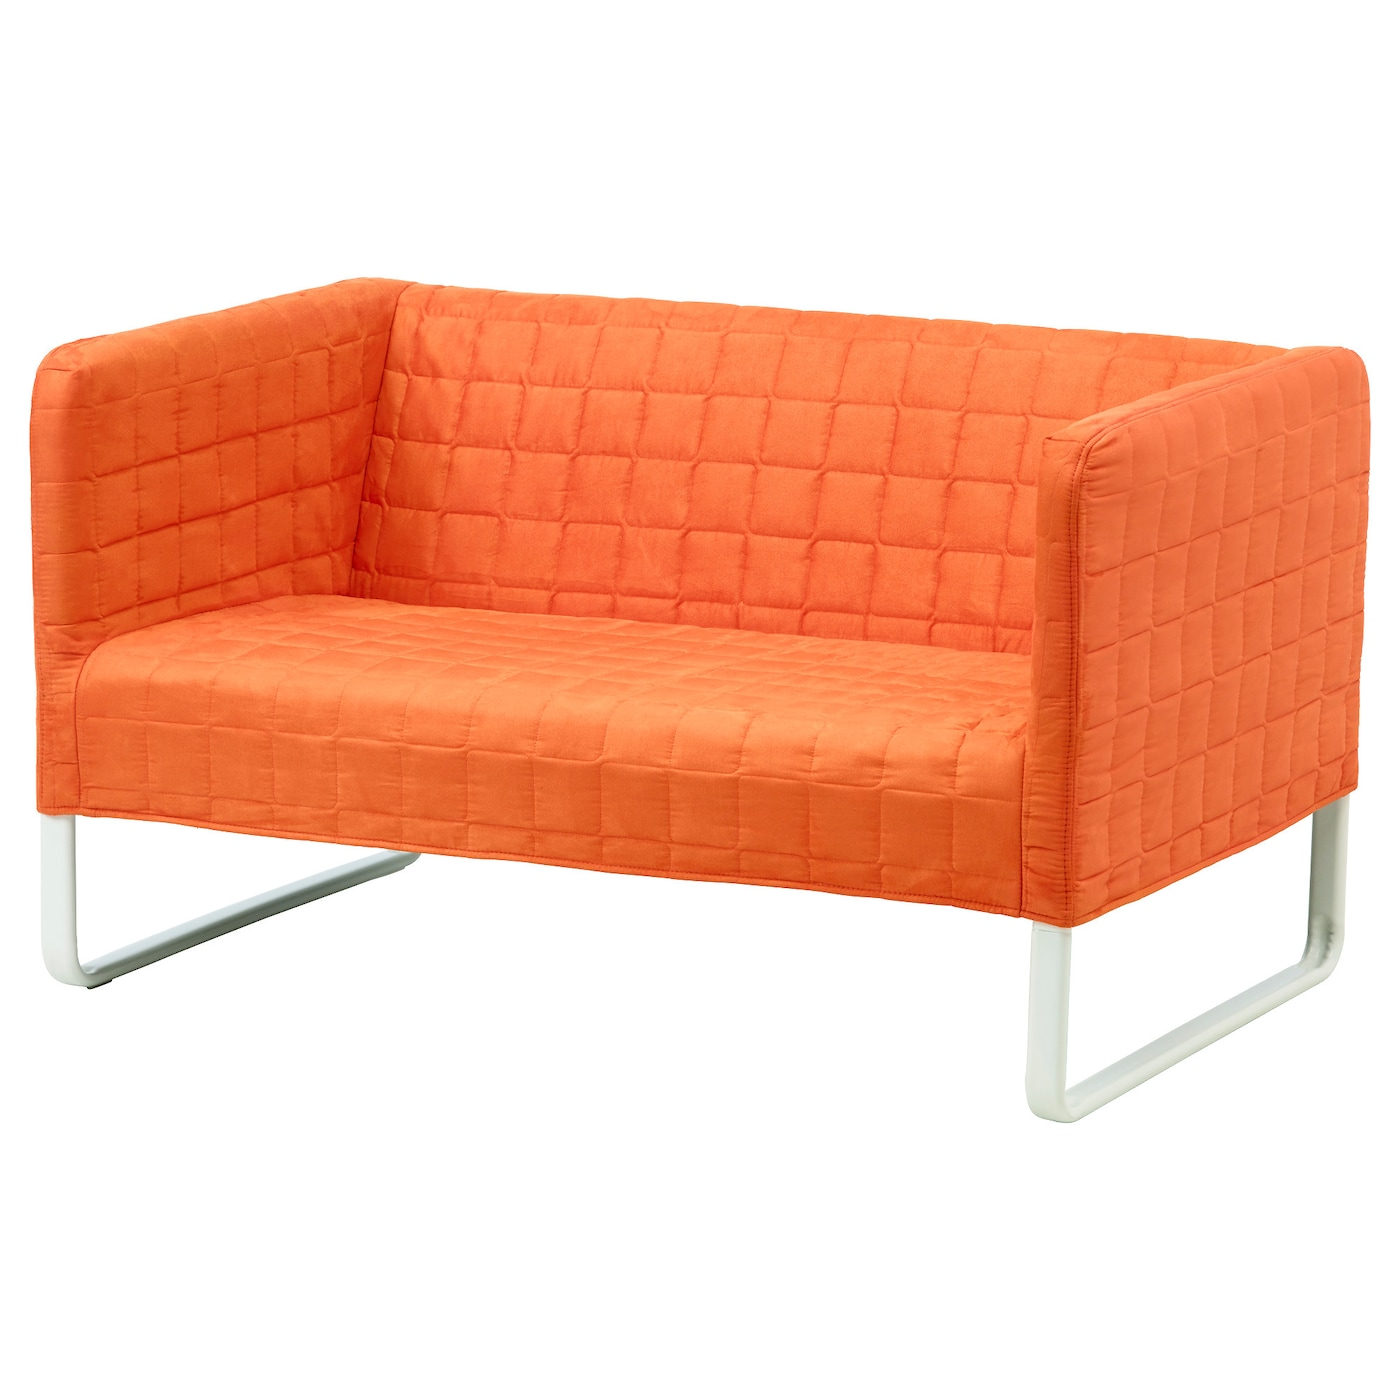 Sofas armchairs ikea for Sofas de 4 plazas baratos